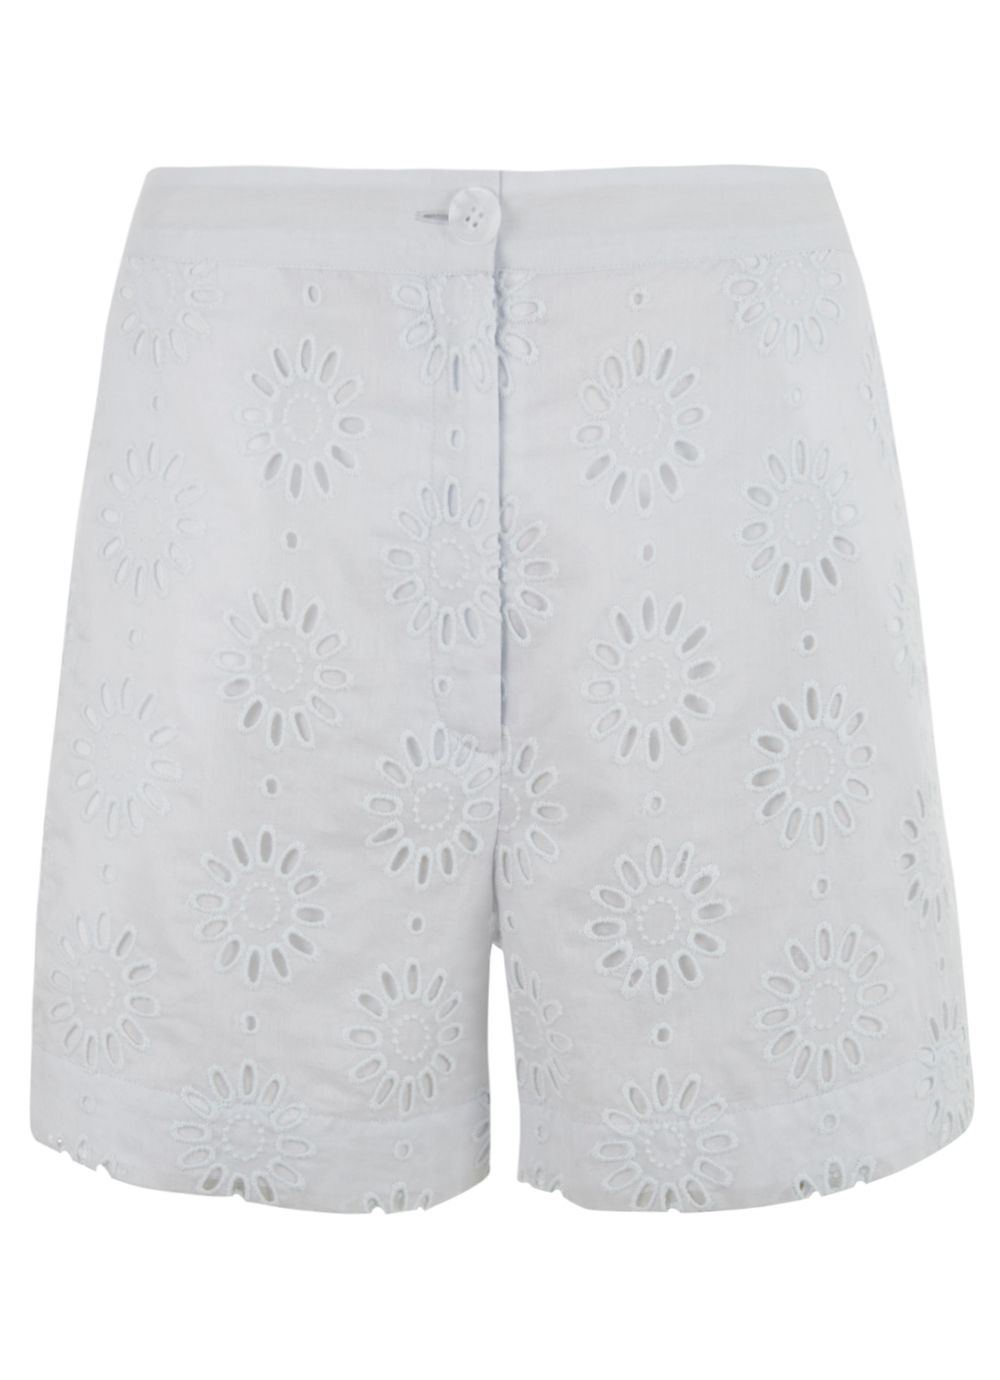 Ice broderie shorts